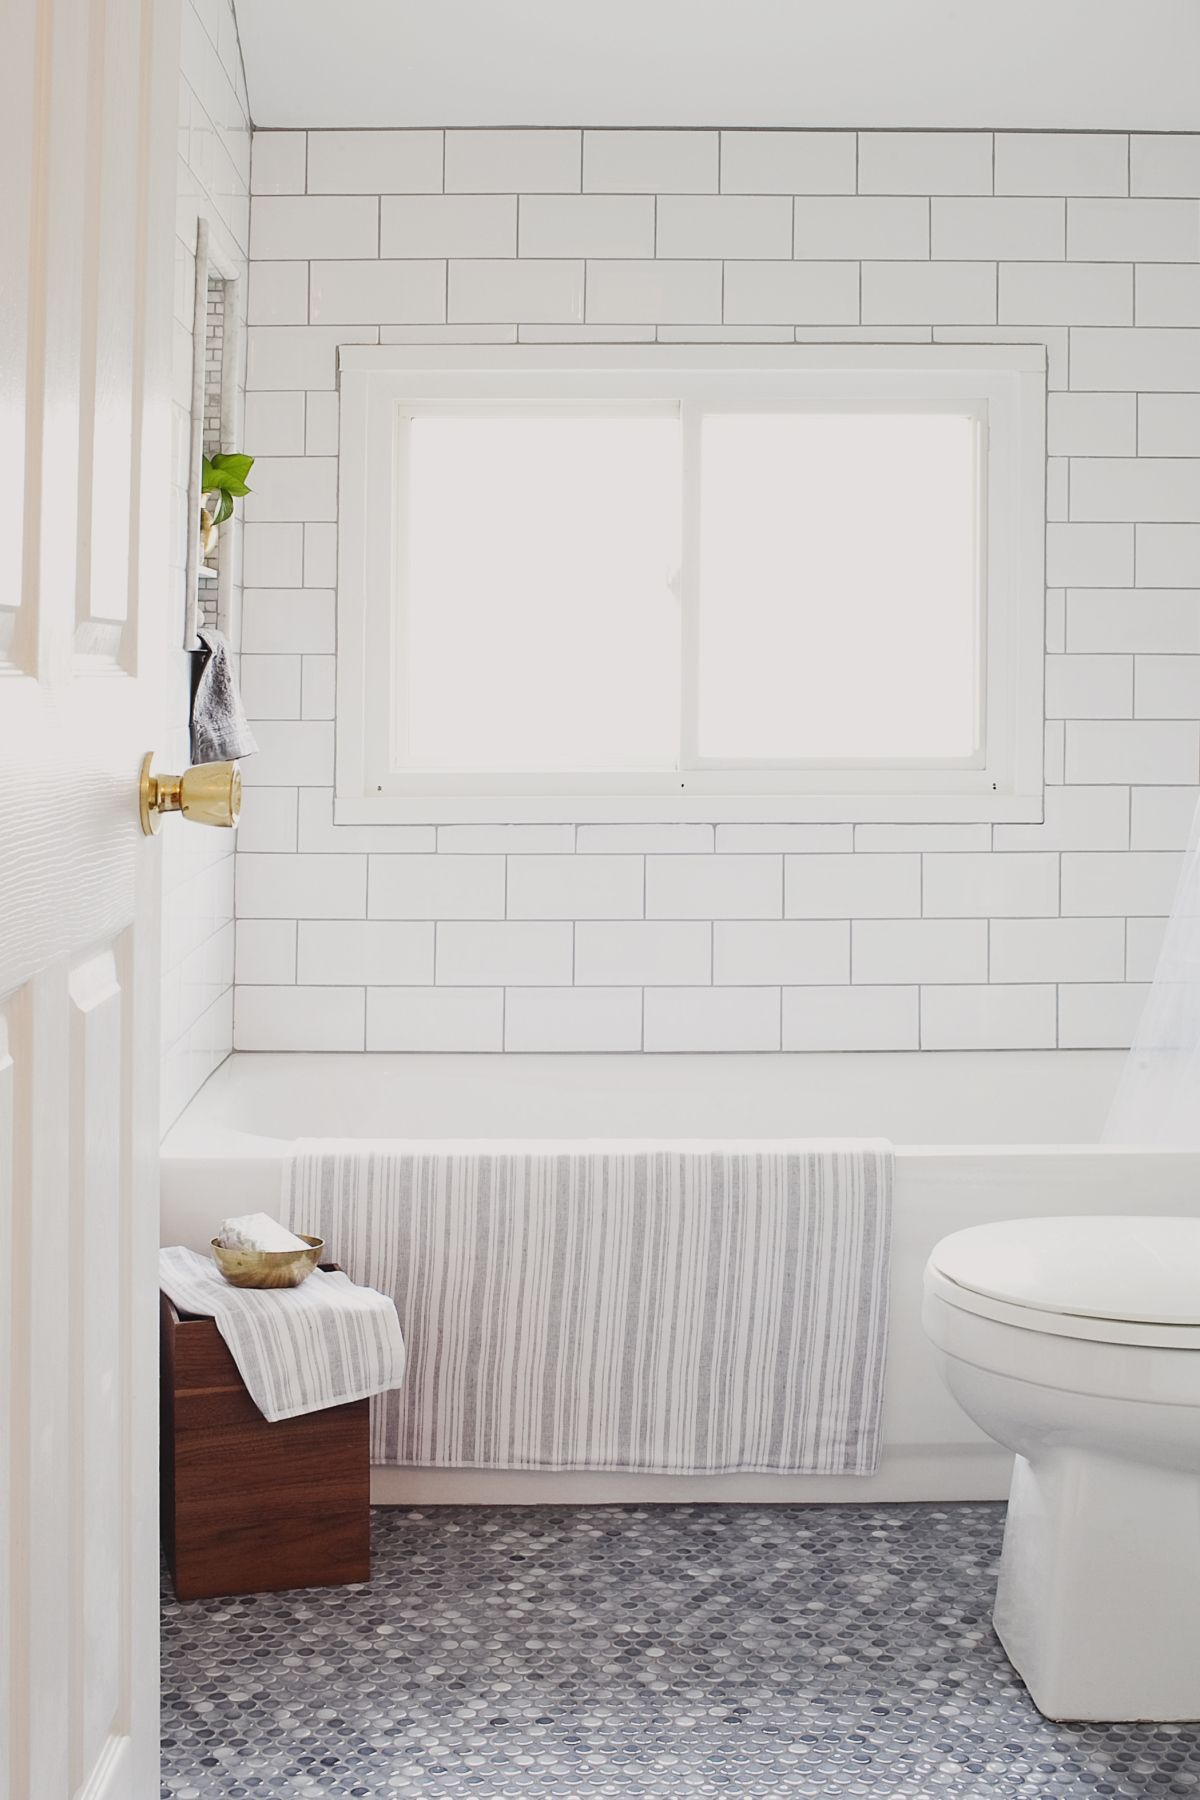 Cute 12 Ceramic Tile Tall 18 Inch Ceramic Tile Clean 1X1 Ceramic Tile 200X200 Floor Tiles Youthful 2X2 Ceiling Tiles Lowes Bright3 X 6 White Subway Tile My Home | Subway Tiles, Bath Remodel And Bathroom Laundry